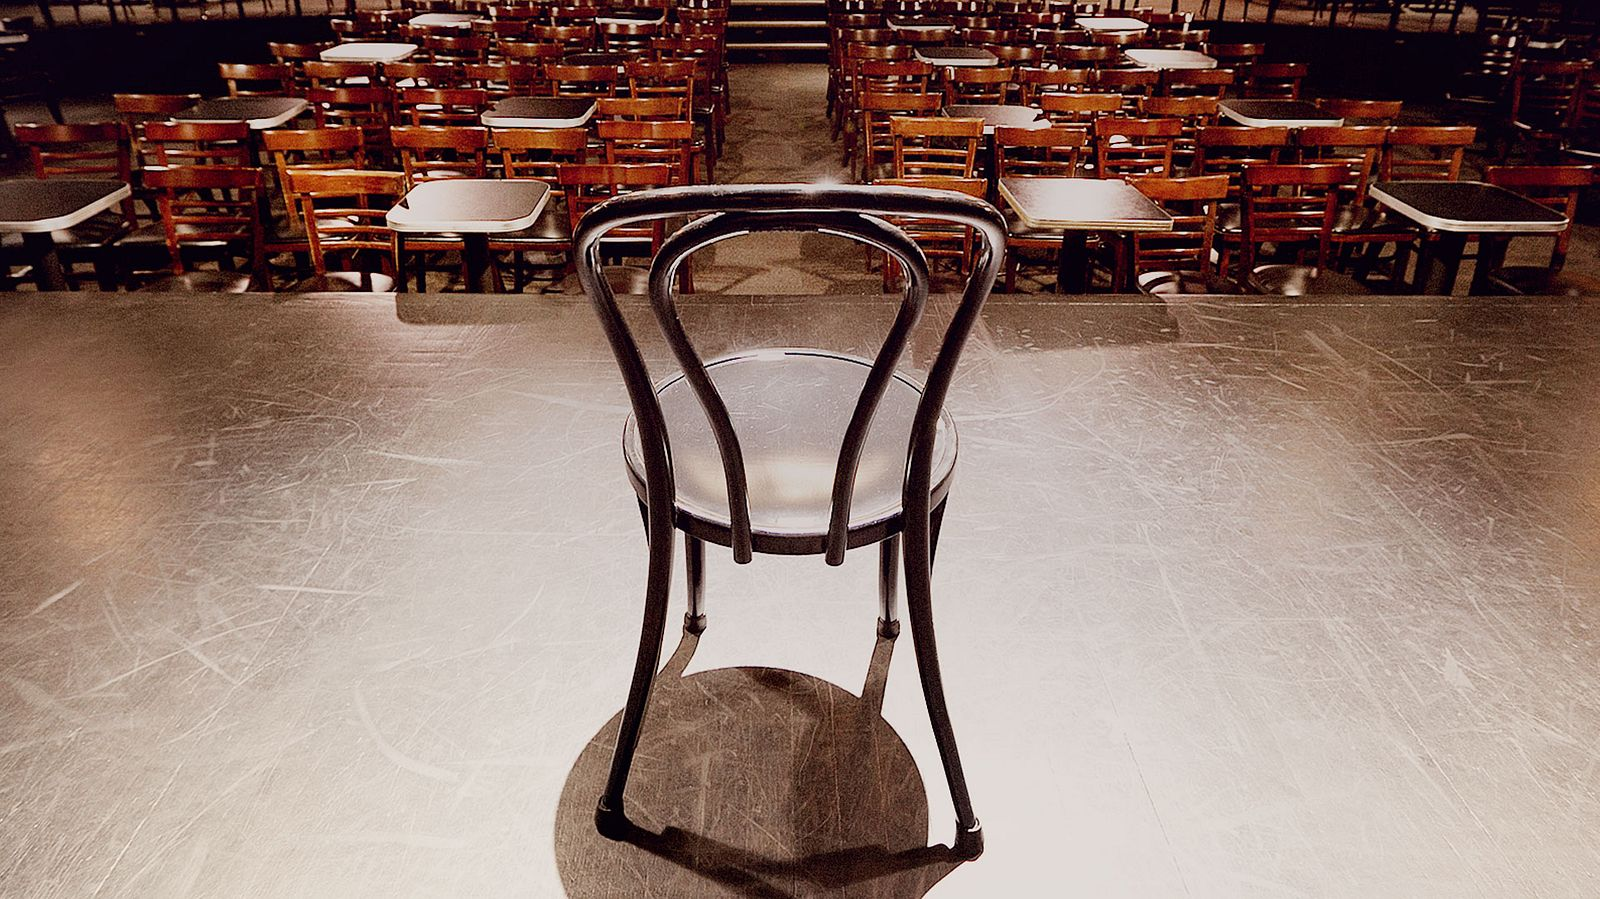 Second City's Iconic Chair – photograph by Someoddpilot